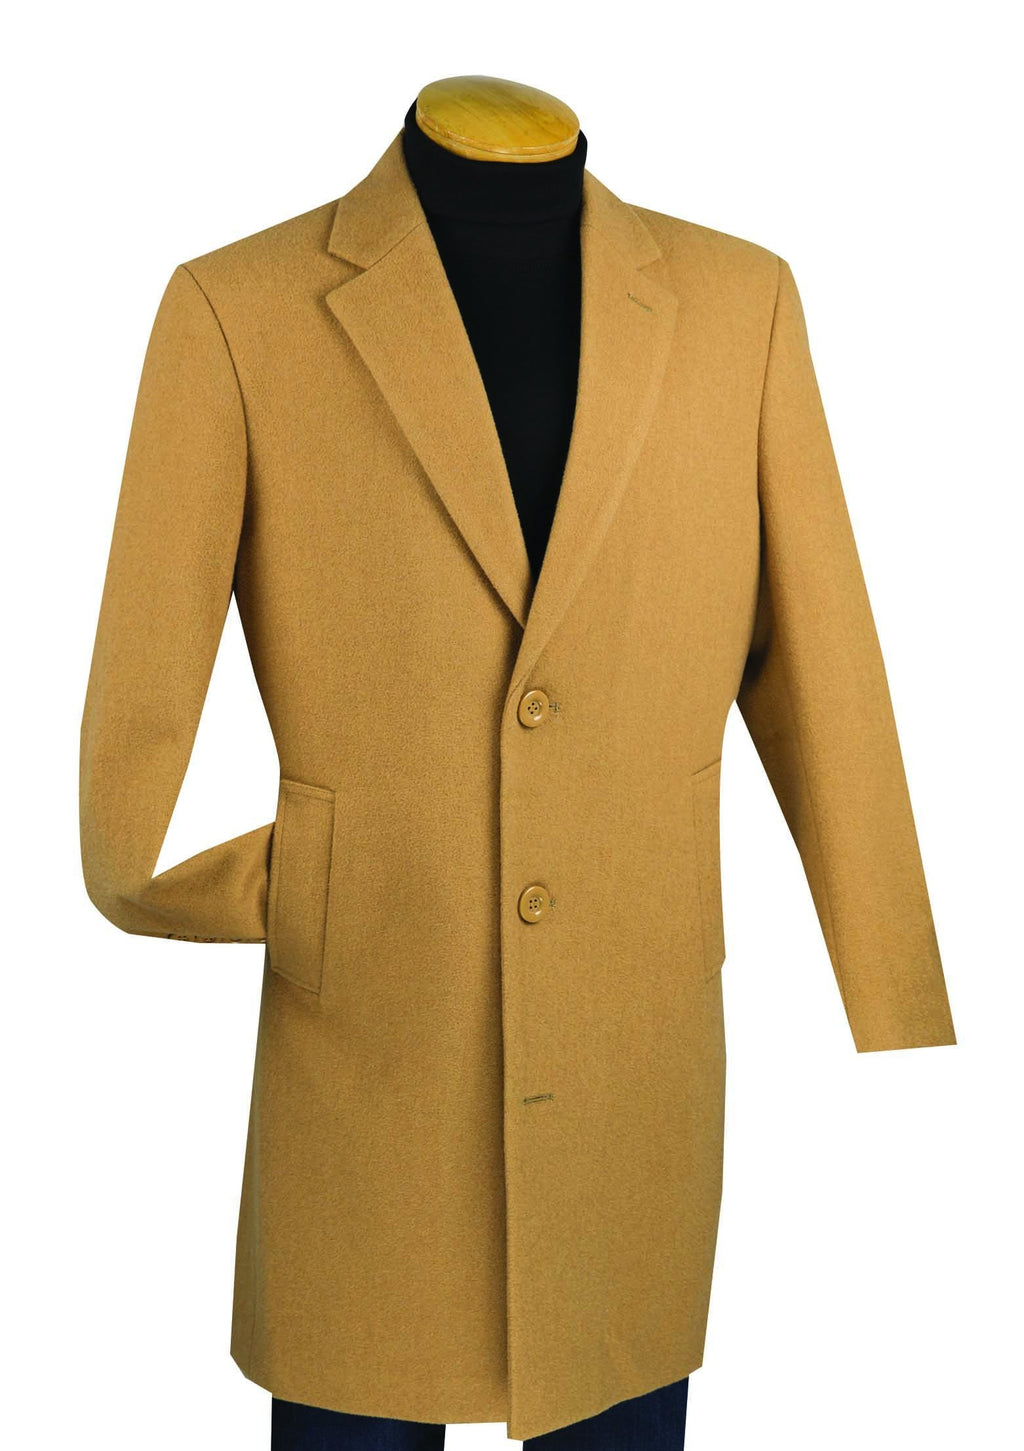 Fall Winter Essential Classic Fit Men's Winter Coat in Camel - SUITS OUTLETS